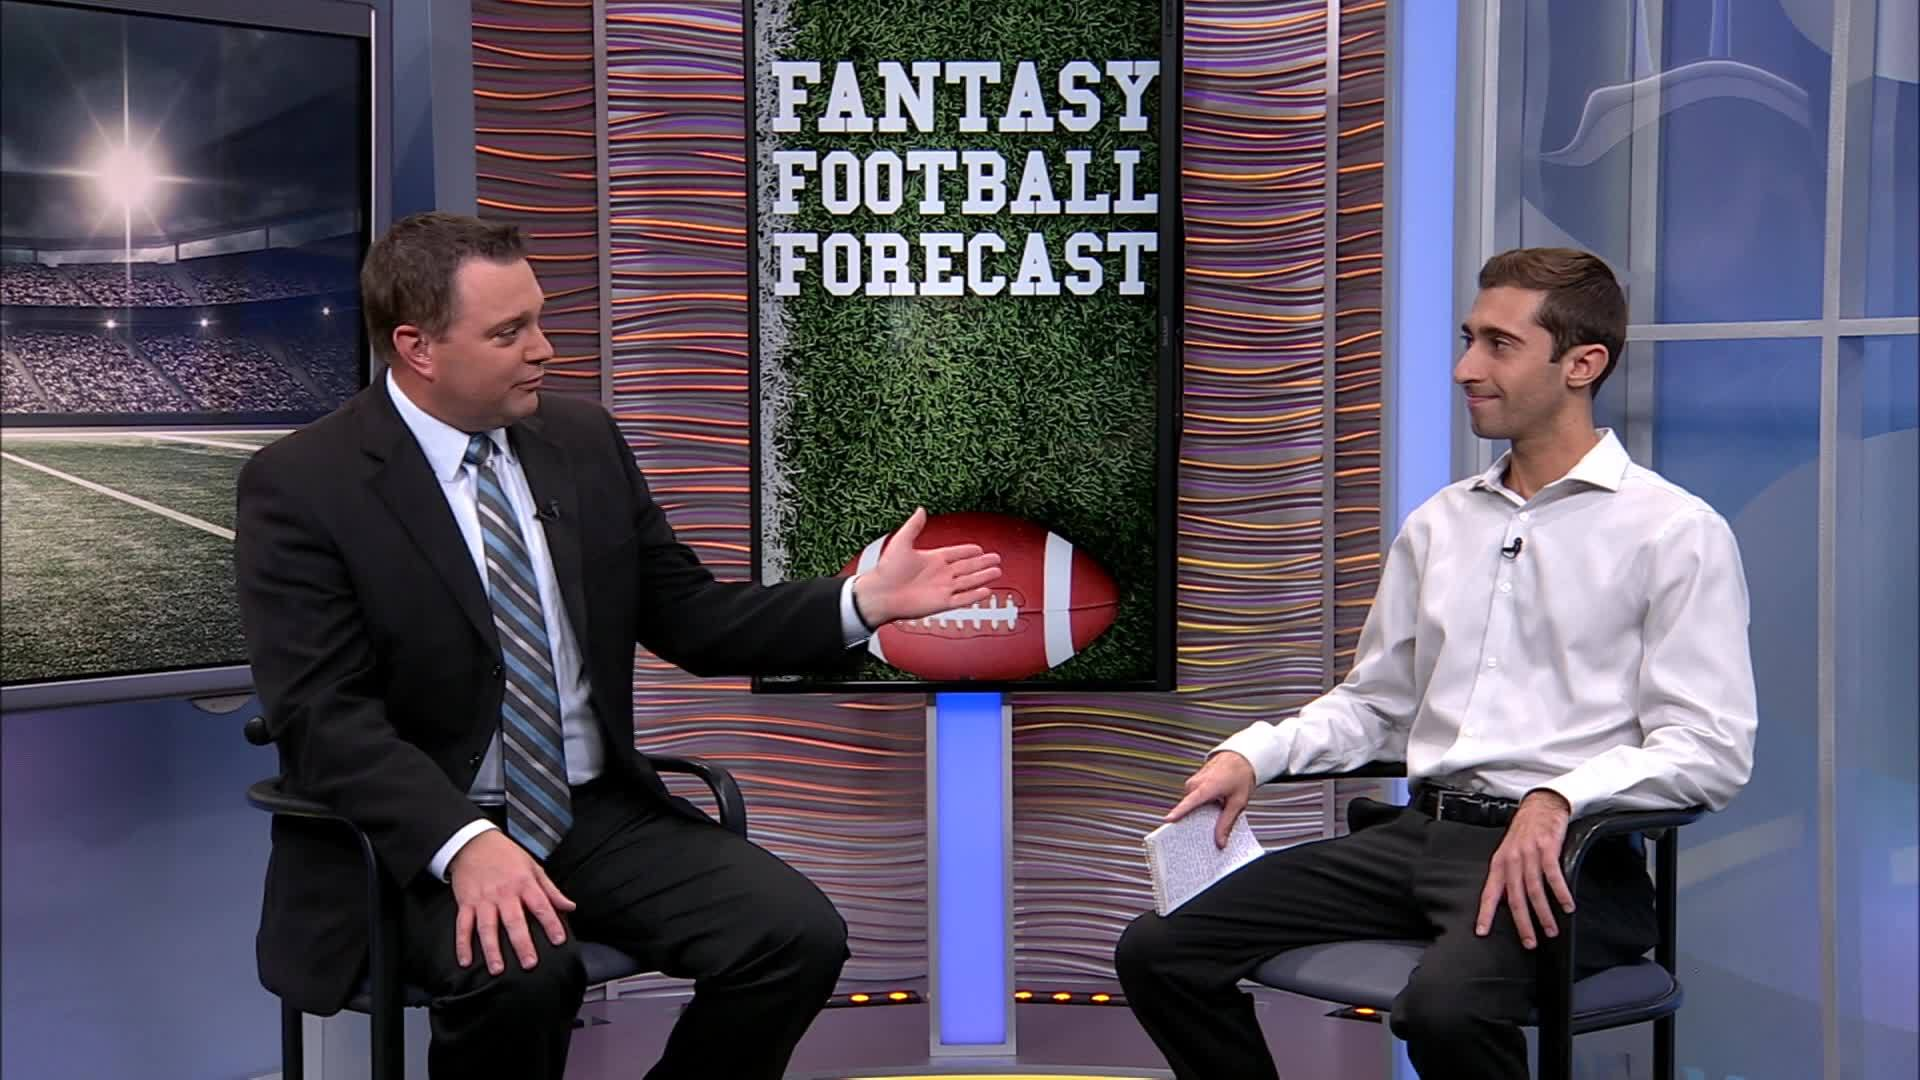 Fantasy Football Forecast helps with final playoff push in week 13